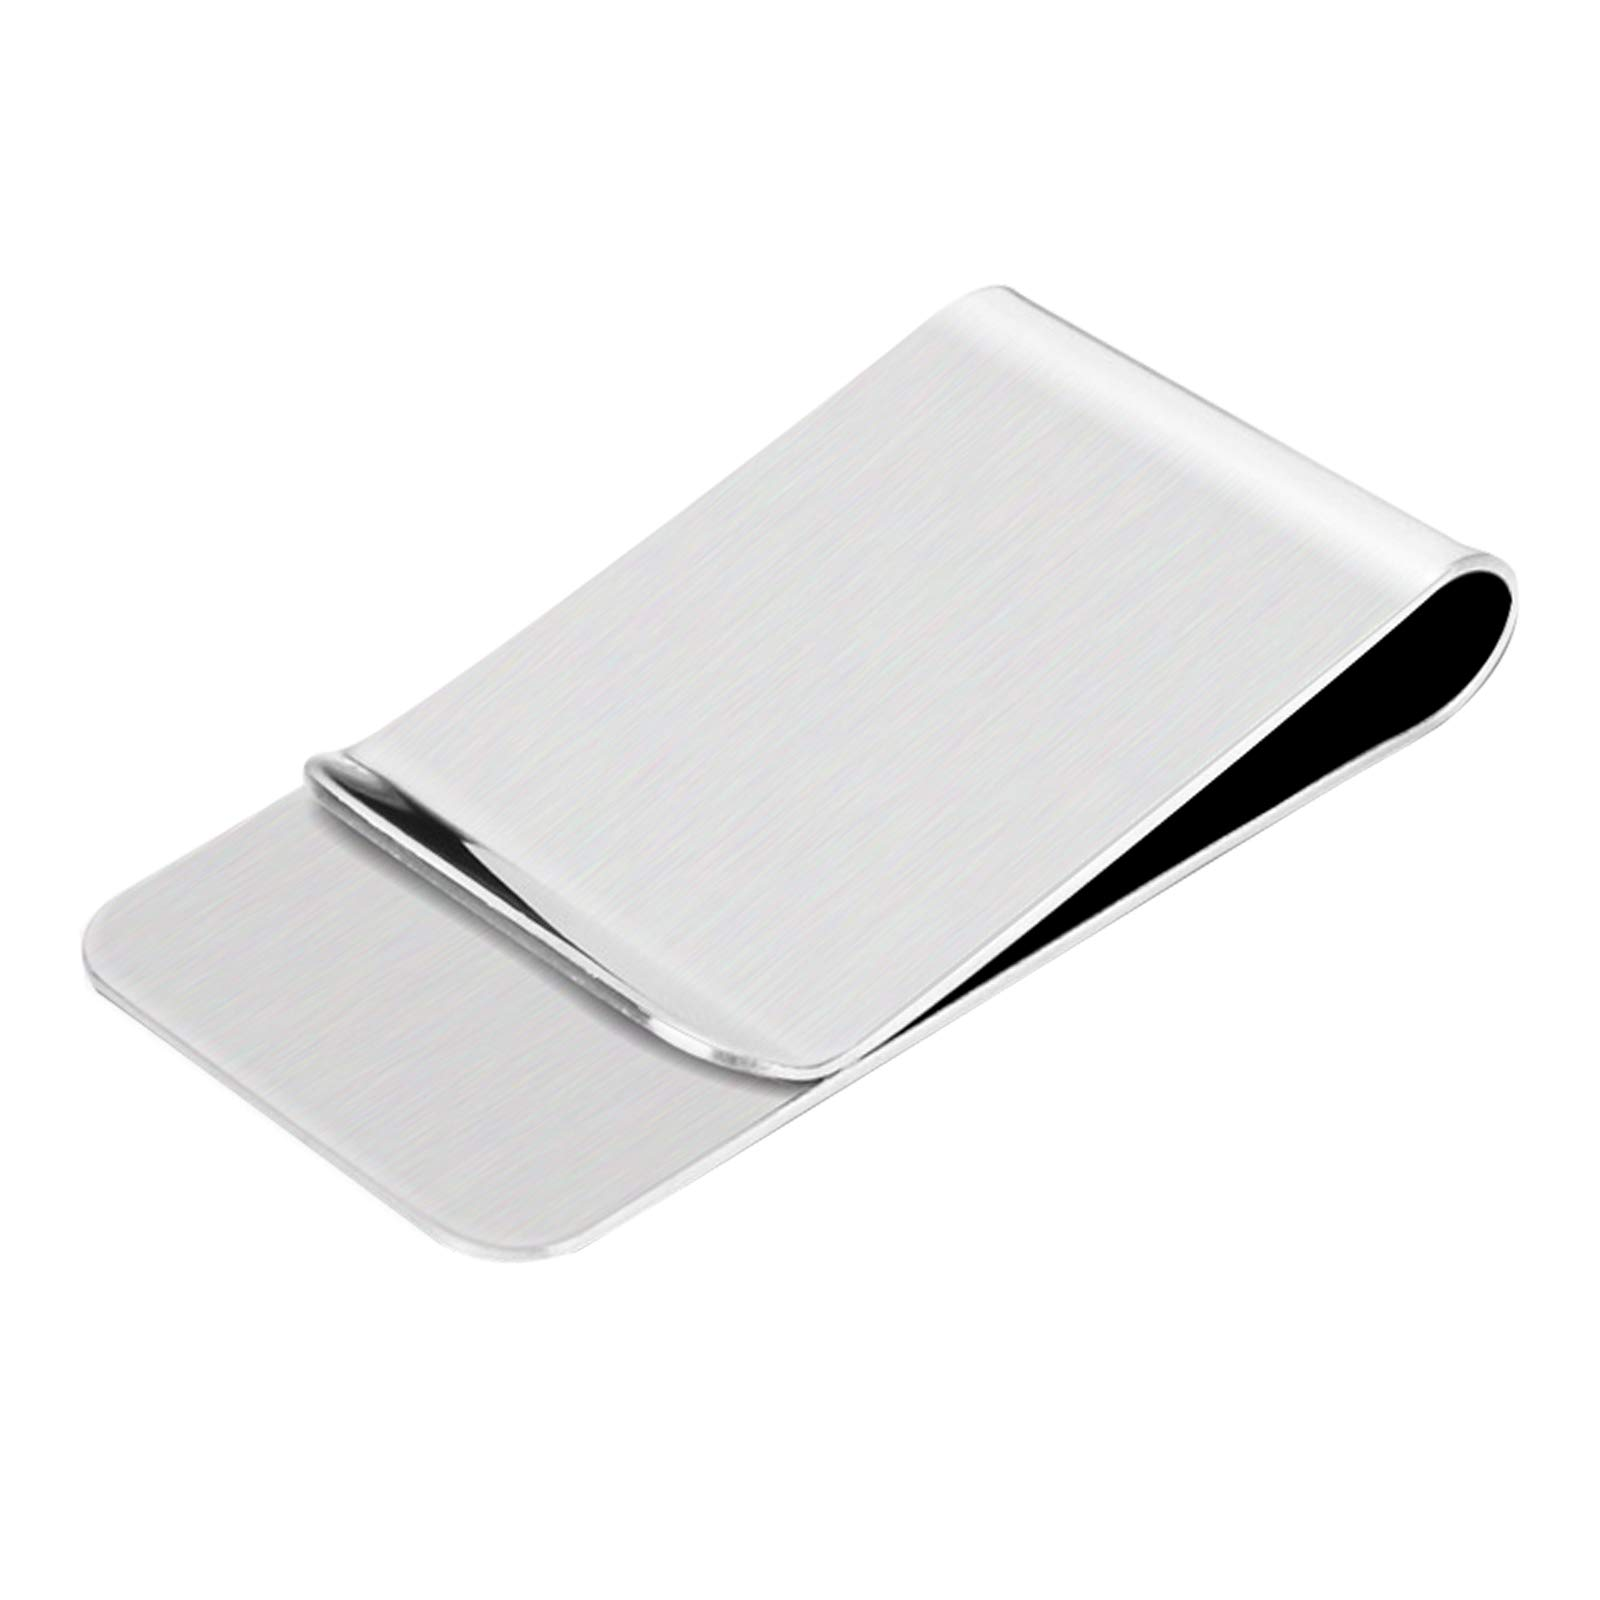 TAZEMAT 10pcs Silver Money Clips Metal Cash Clip Slim Stainless Steel Credit Card Holder for Men and Women Durable Portable Lightweight Luxurious Polished Notes Bills Invoice Holder 5.1CM